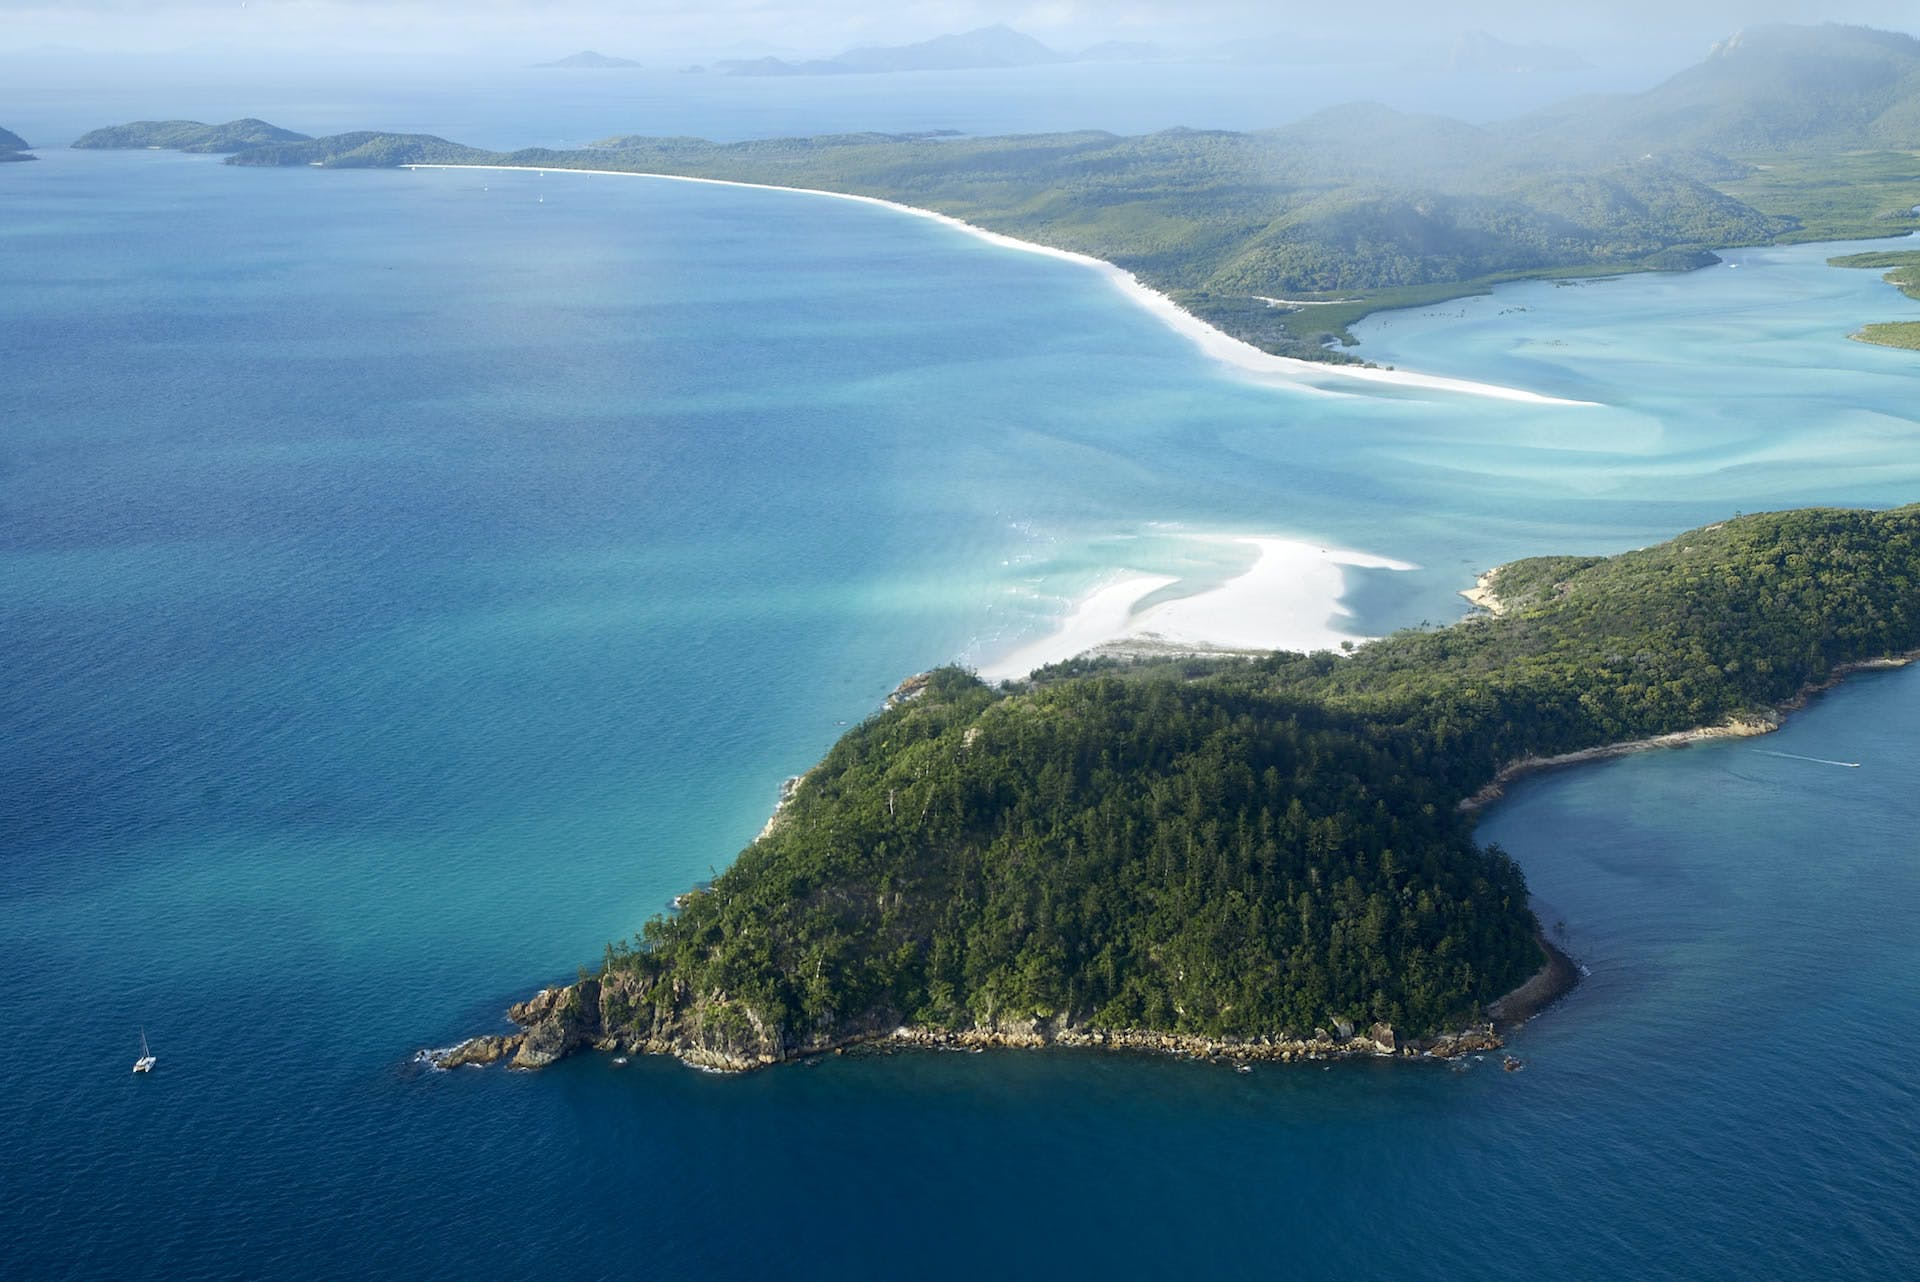 hill inlet whitehaven beach, whitsundays - east coast australia